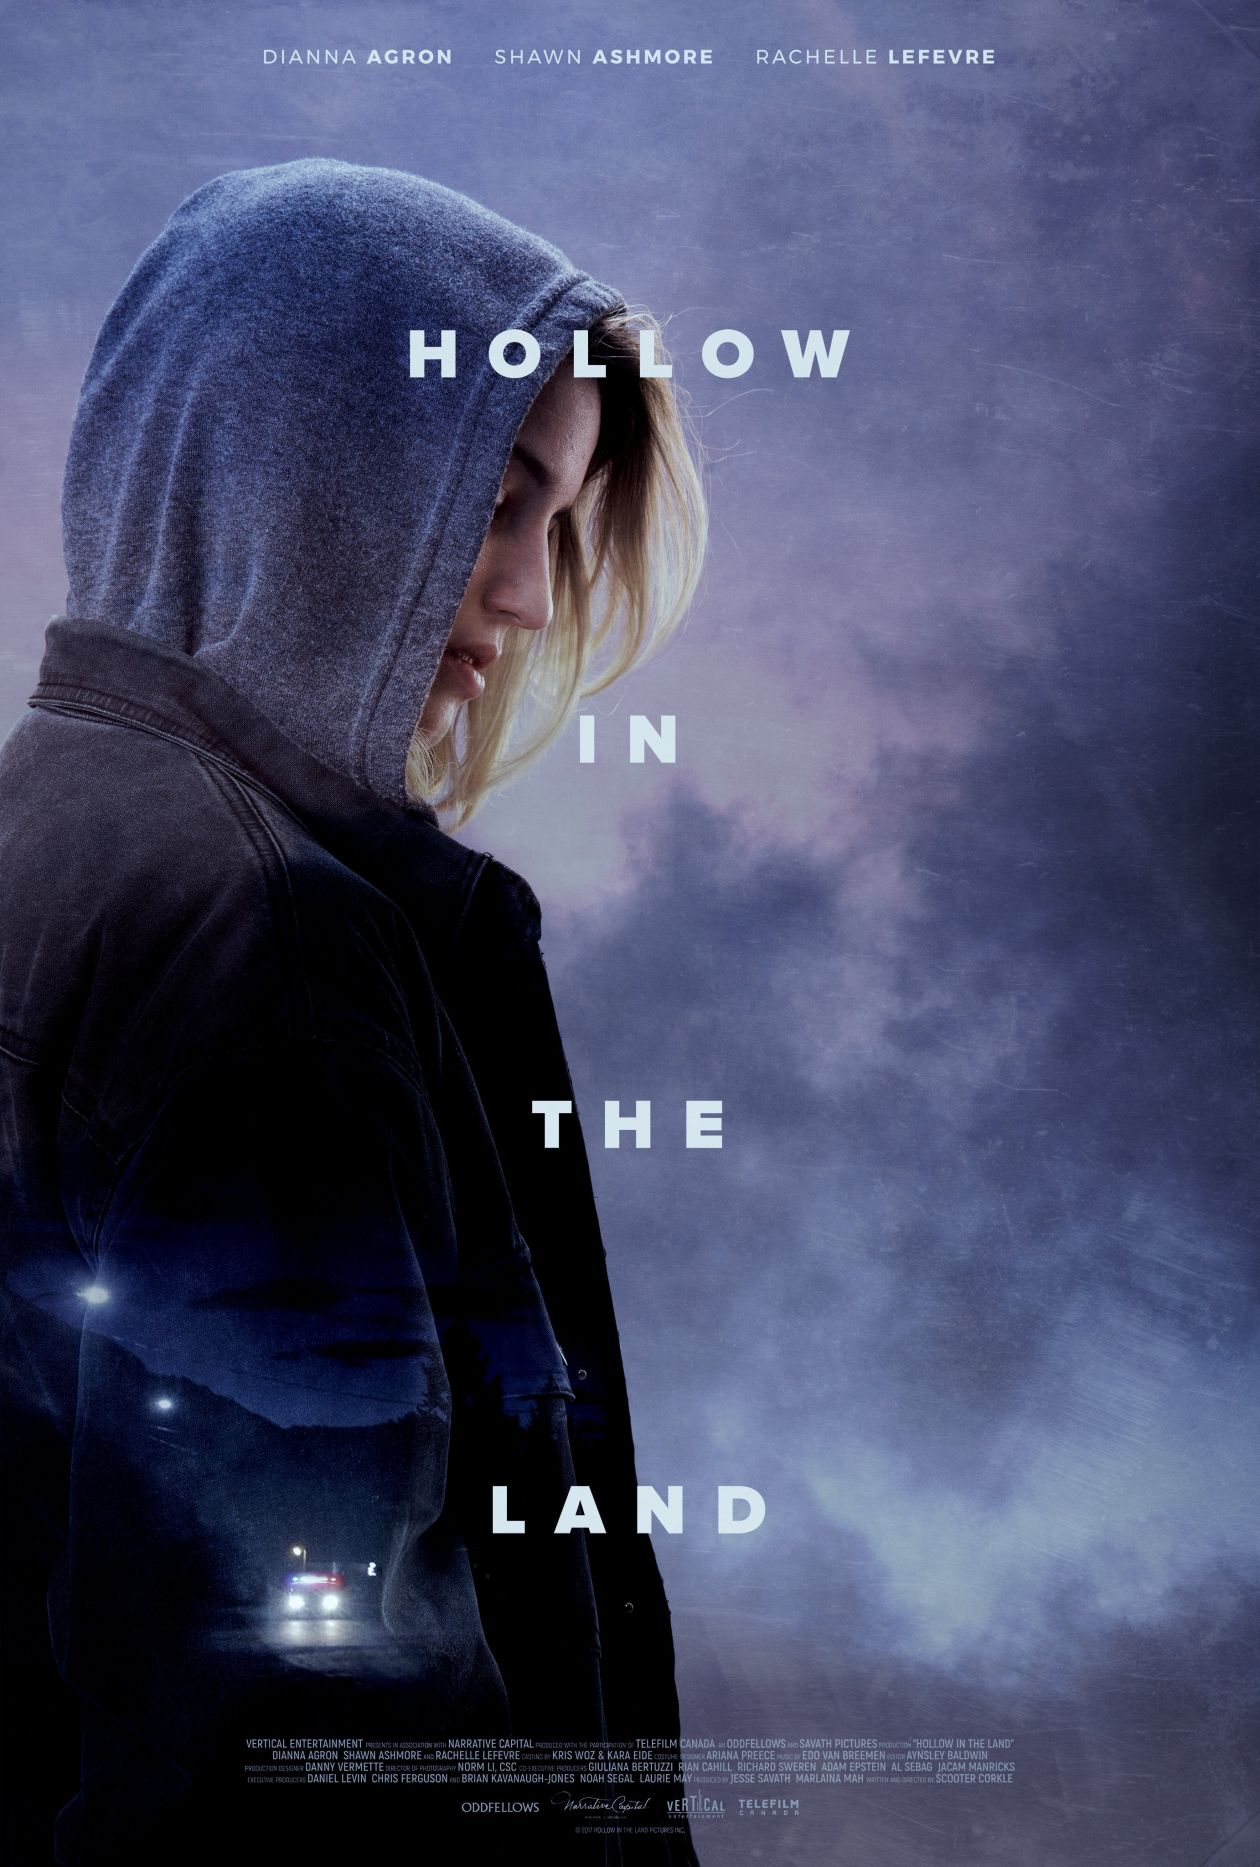 Dianna Agron | Hollow in the Land | Scooter Corkle 2017 / Movie poster / Affiche du film